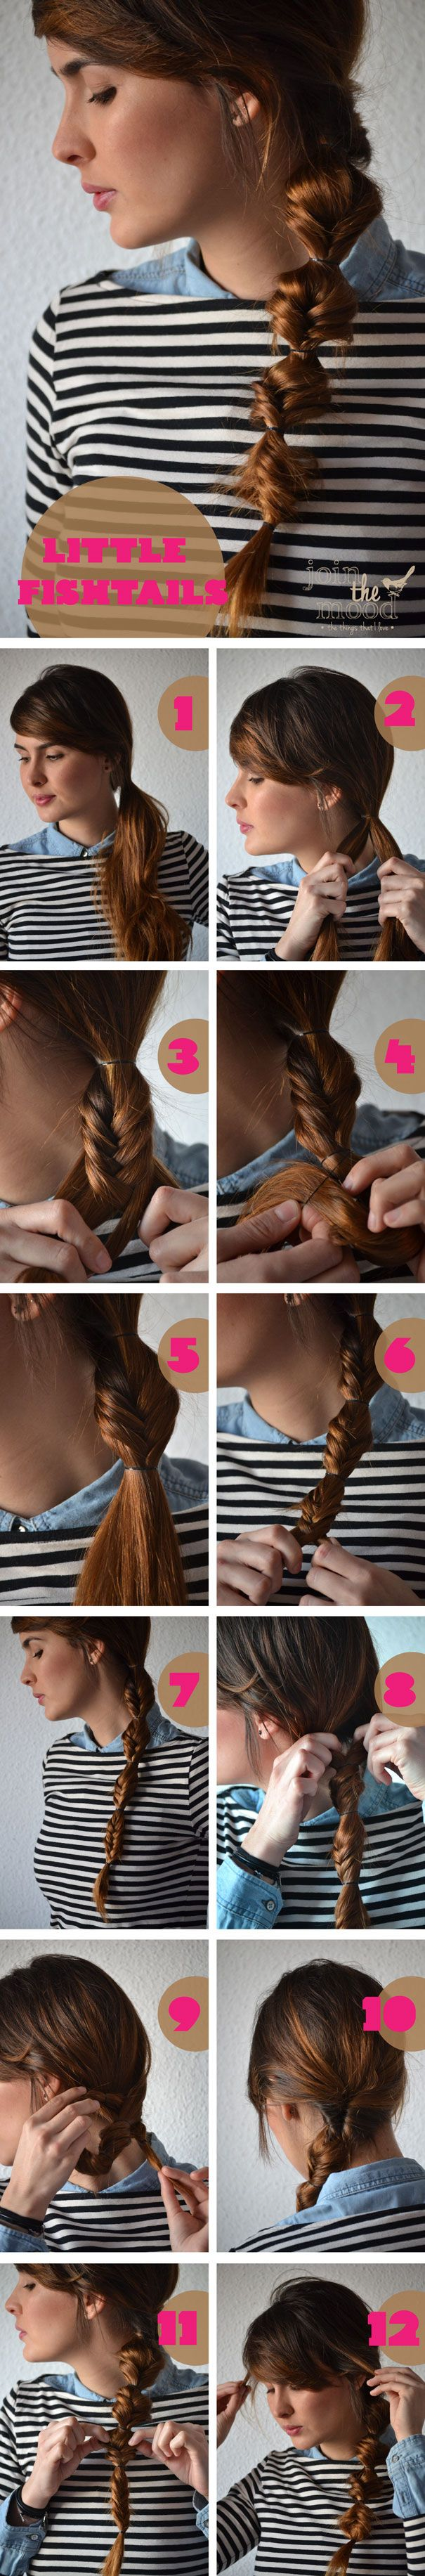 20 COOL HaIR TUTORIALS (pictured- LITTLE FISHTAIL HAIR-DO) SOME REALLY FANCY IDEAS YOU CAN USE FOR WEDDINGS,  SPECIAL OCCASIONS OR PARTIES!